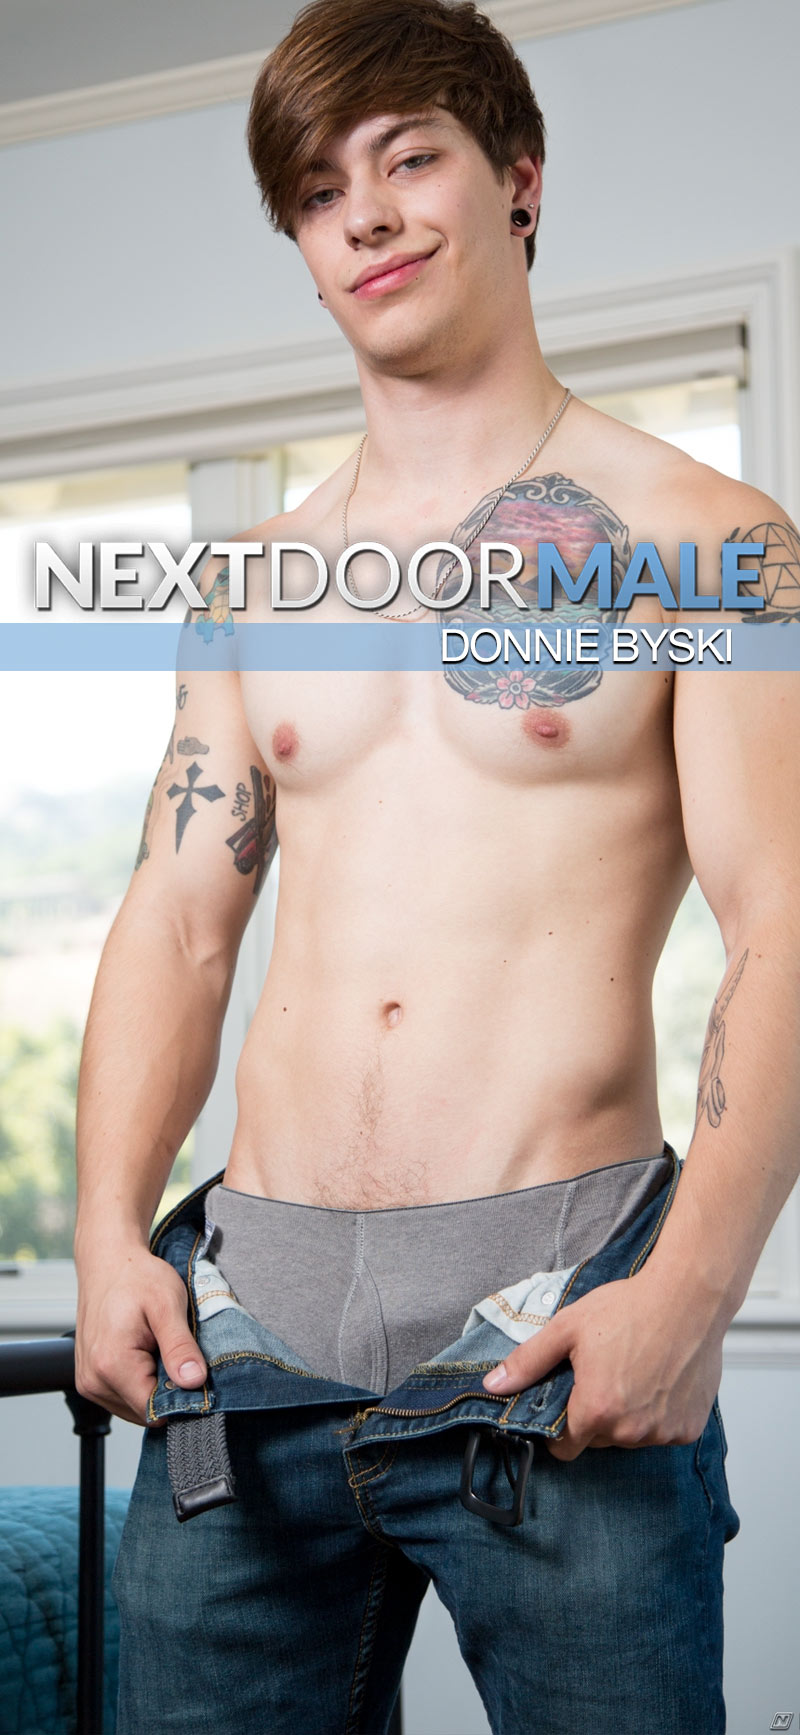 Donnie Byski at Next Door Male